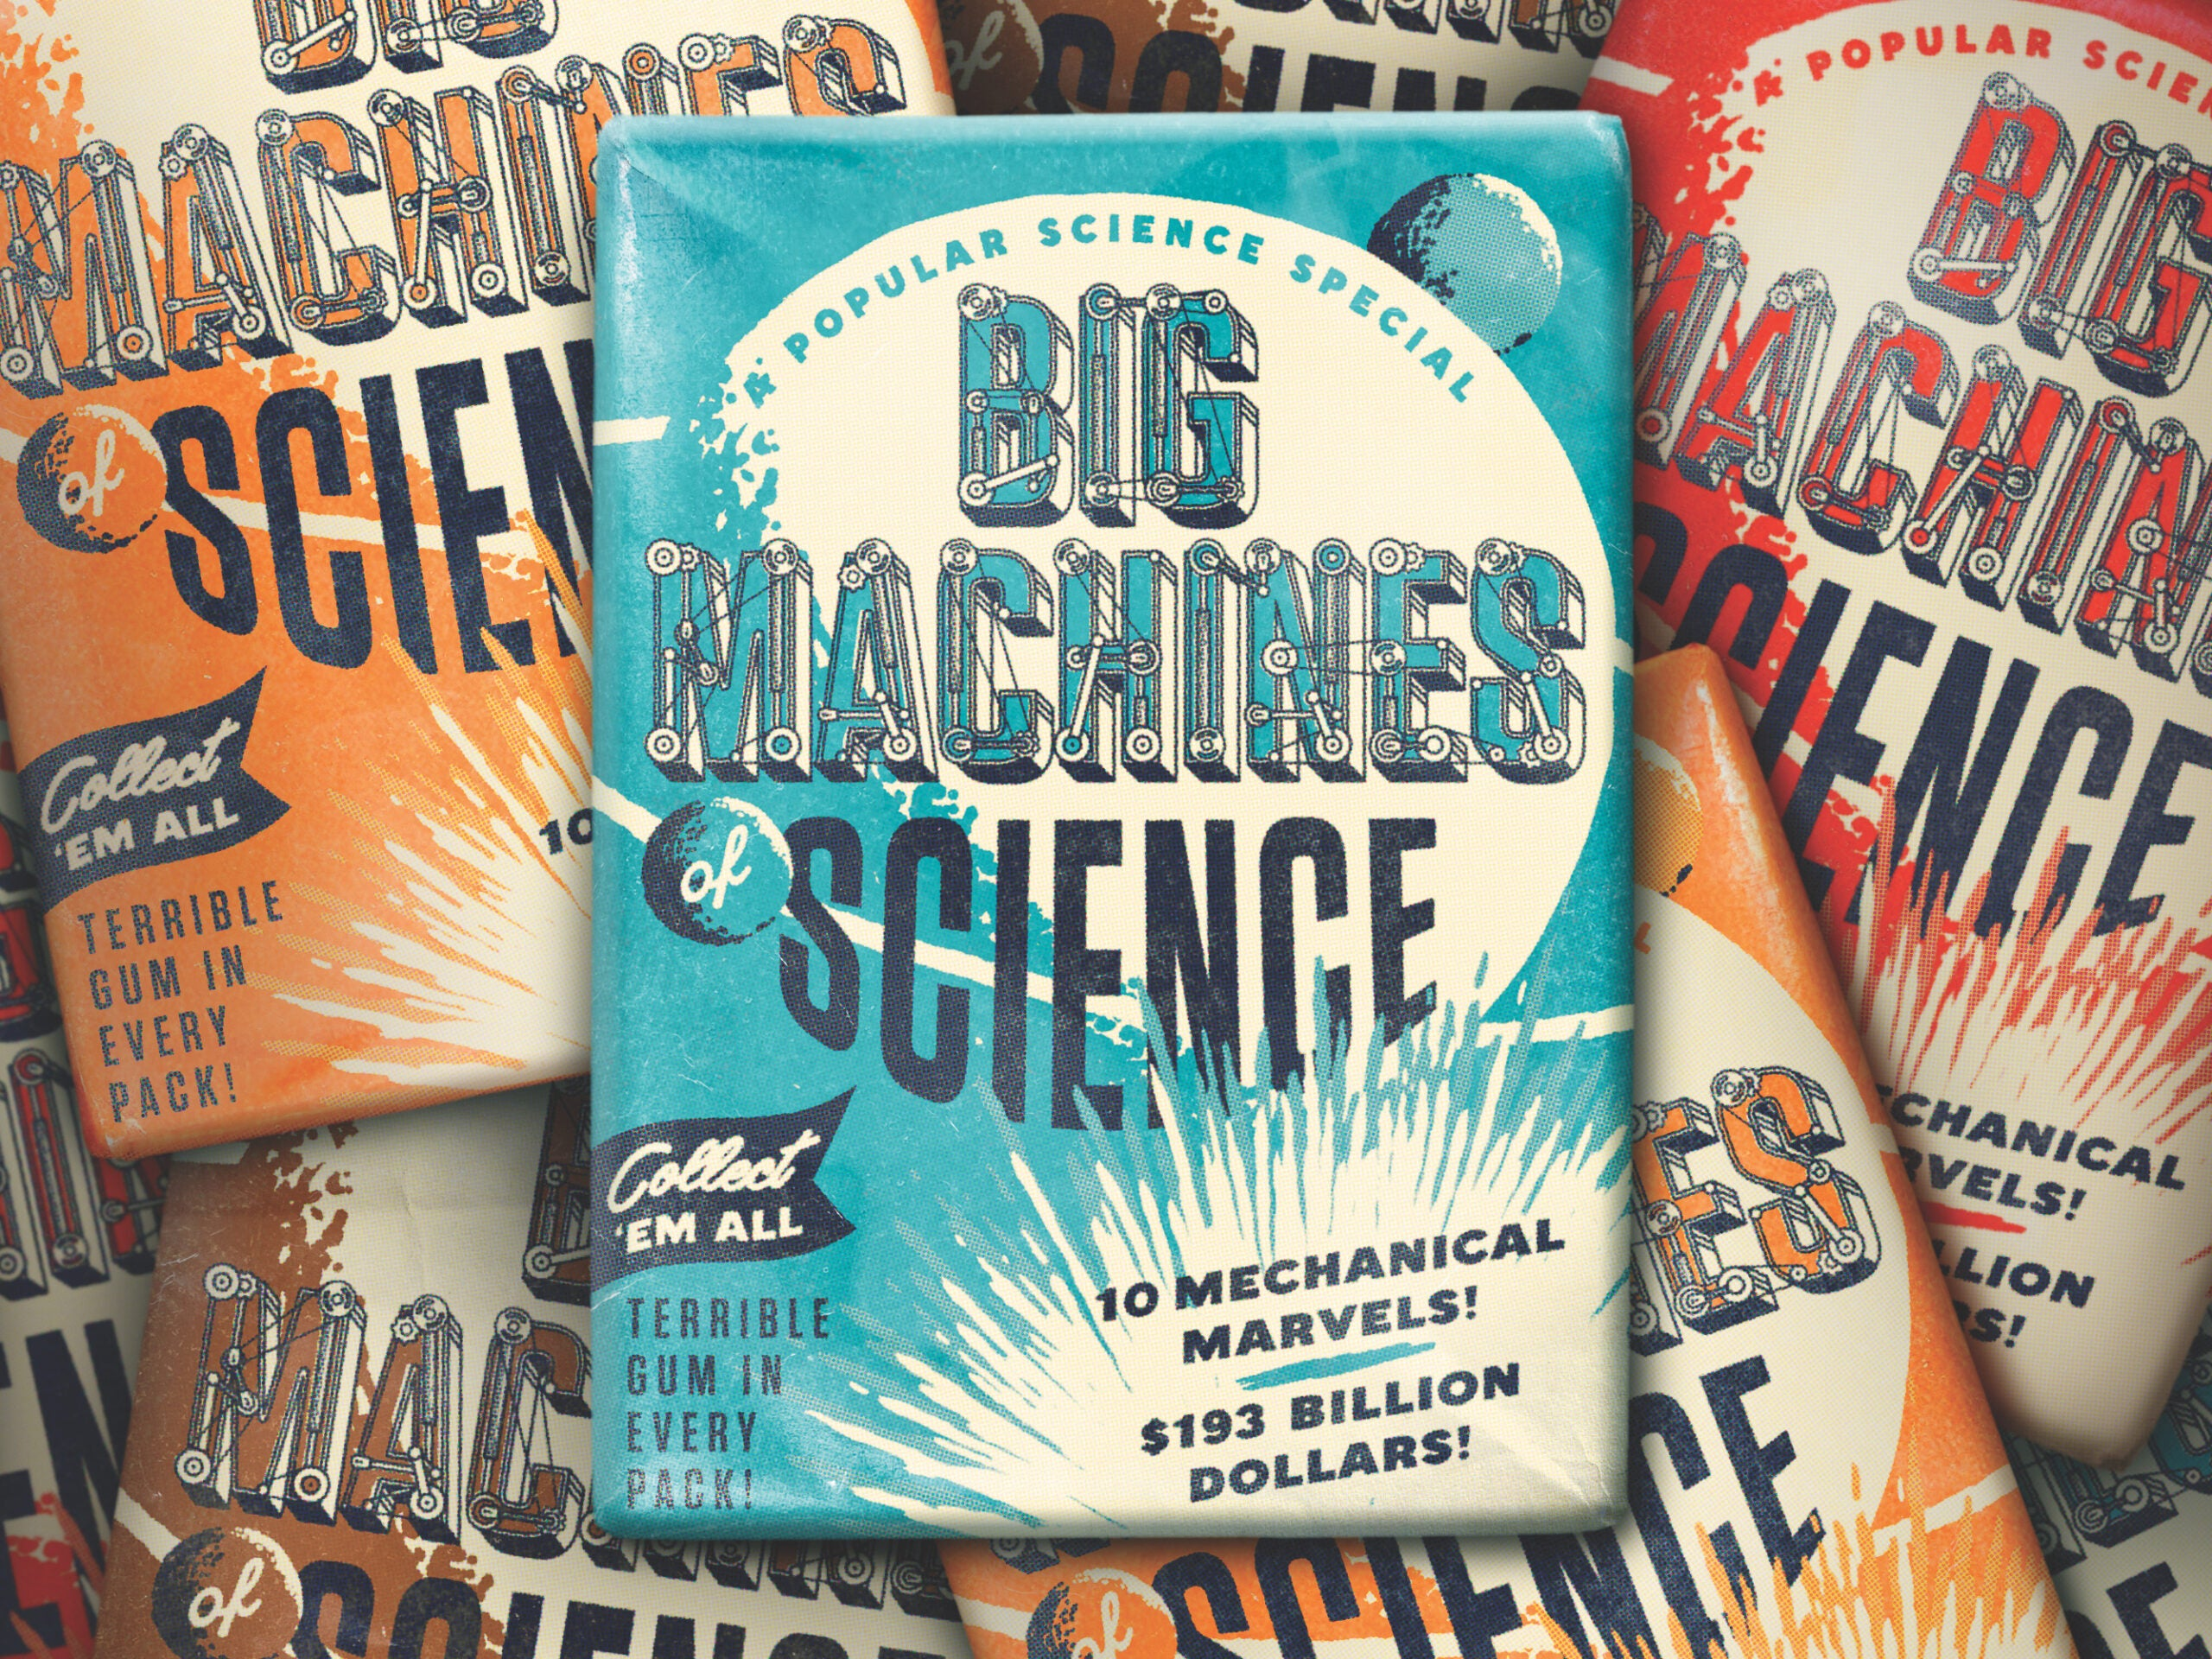 10 huge machines that changed science